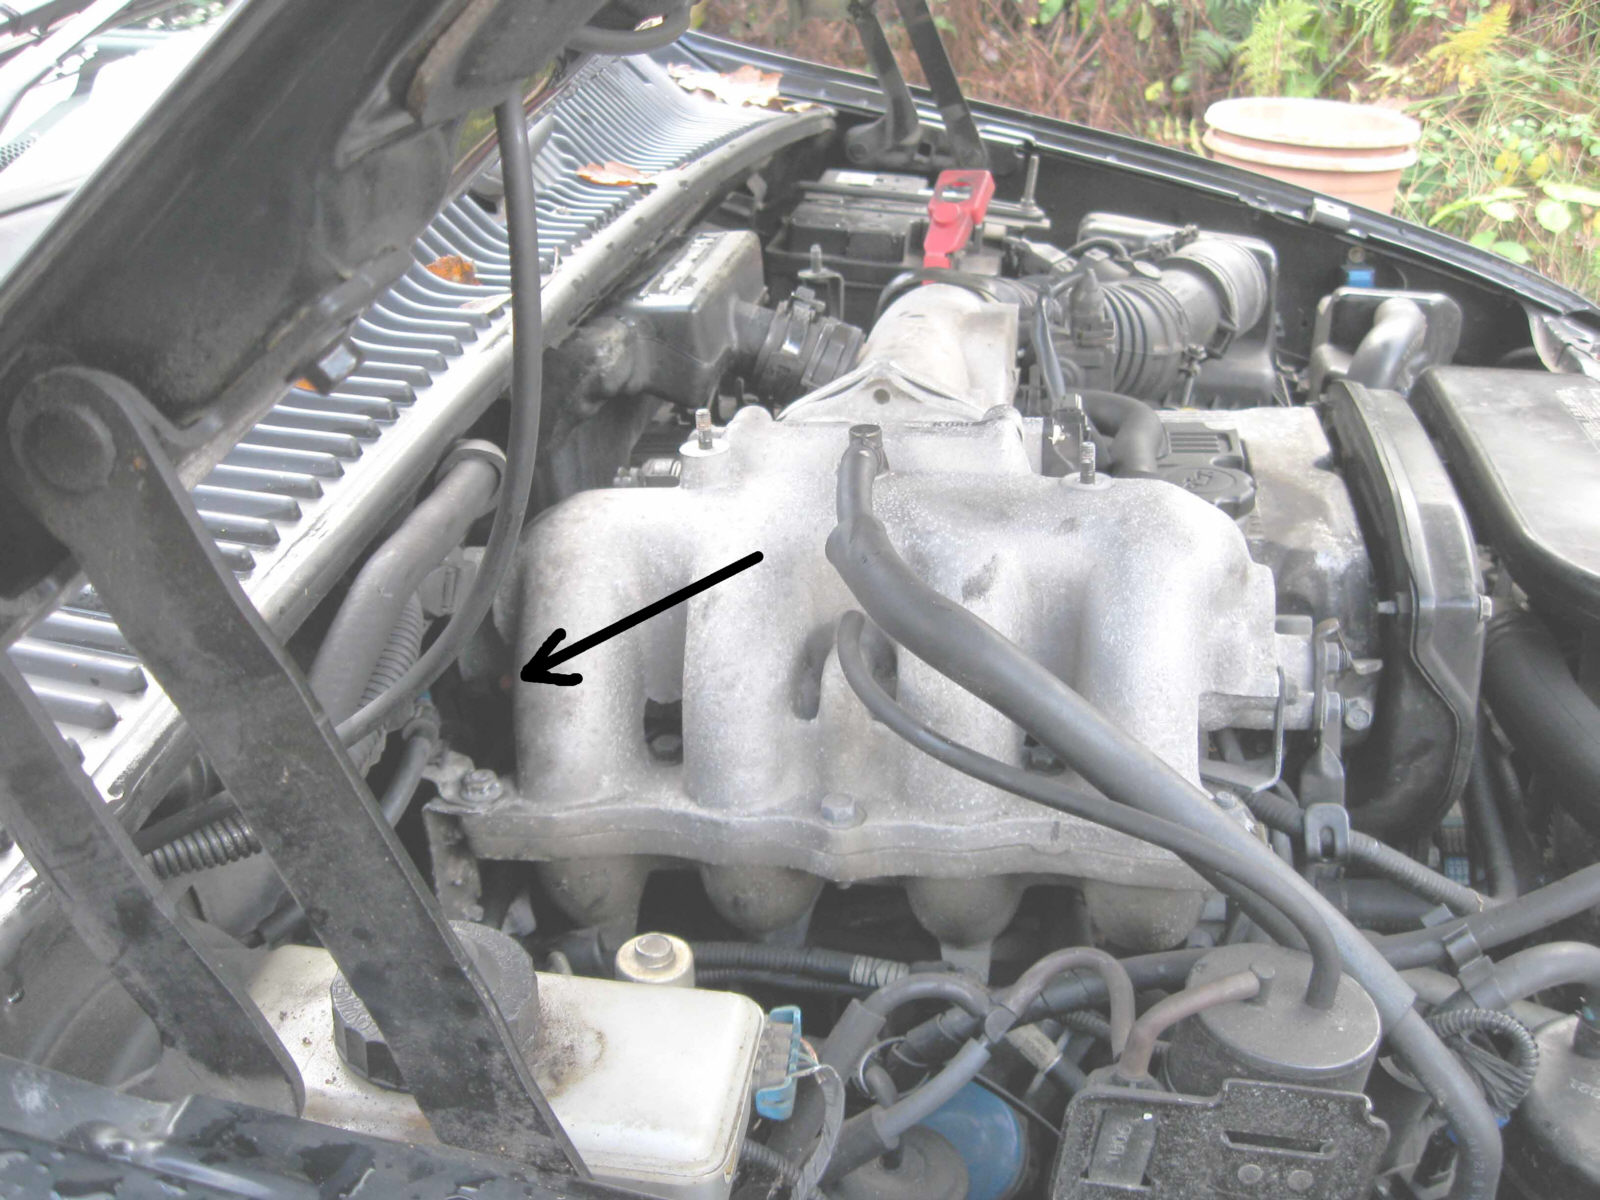 Kia Sorento Vacuum Diagram 26 Wiring Images 2006 Sportage Engine 4784d1258719268 Pipe Missing Inlet Manifold Car 20 11 09 Wide Vac